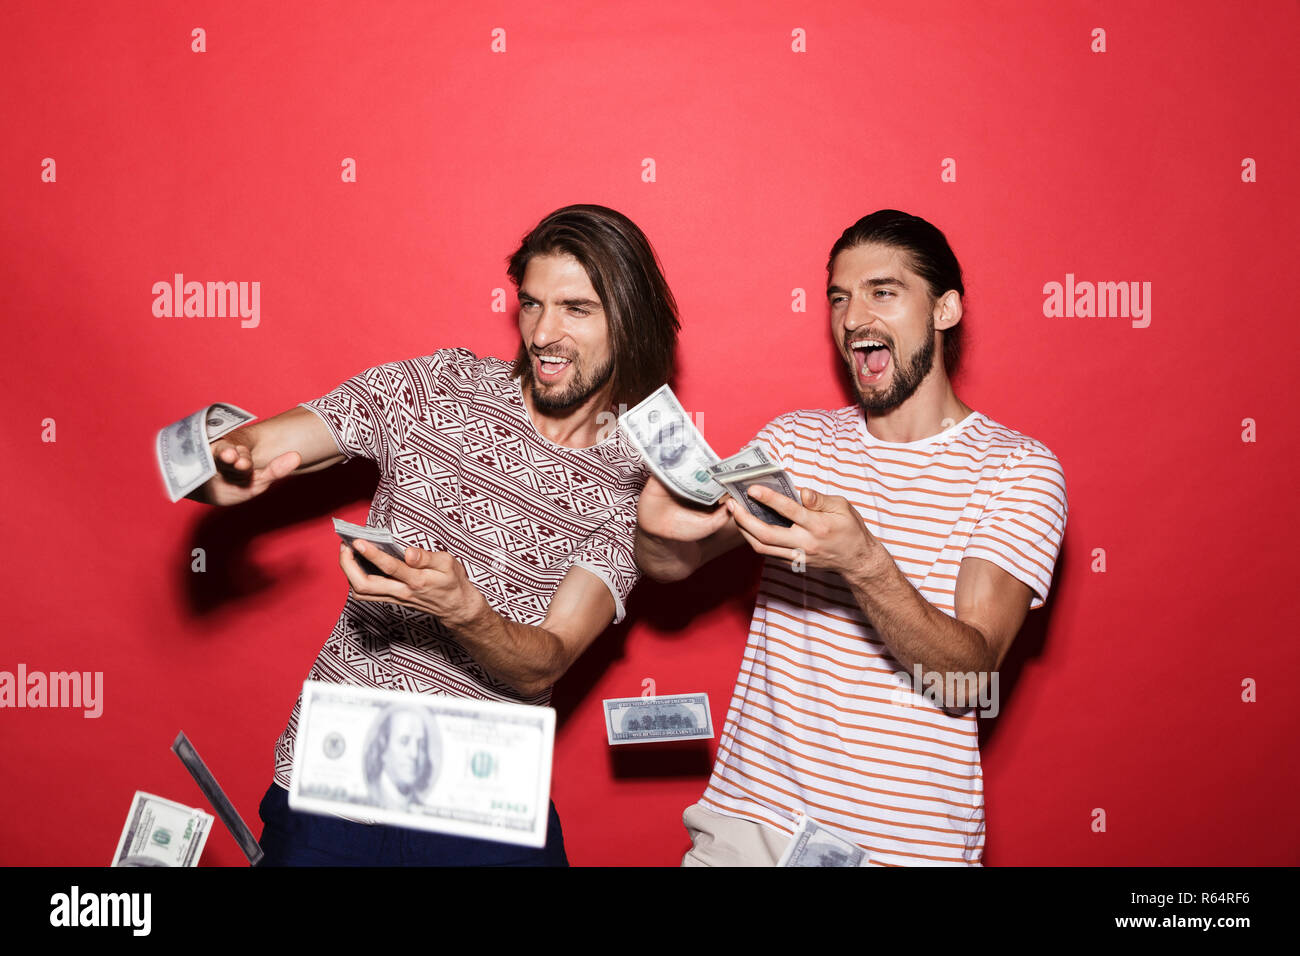 Portrait of a two young joyful twin brothers isolated over red background, throwing out money banknotes - Stock Image